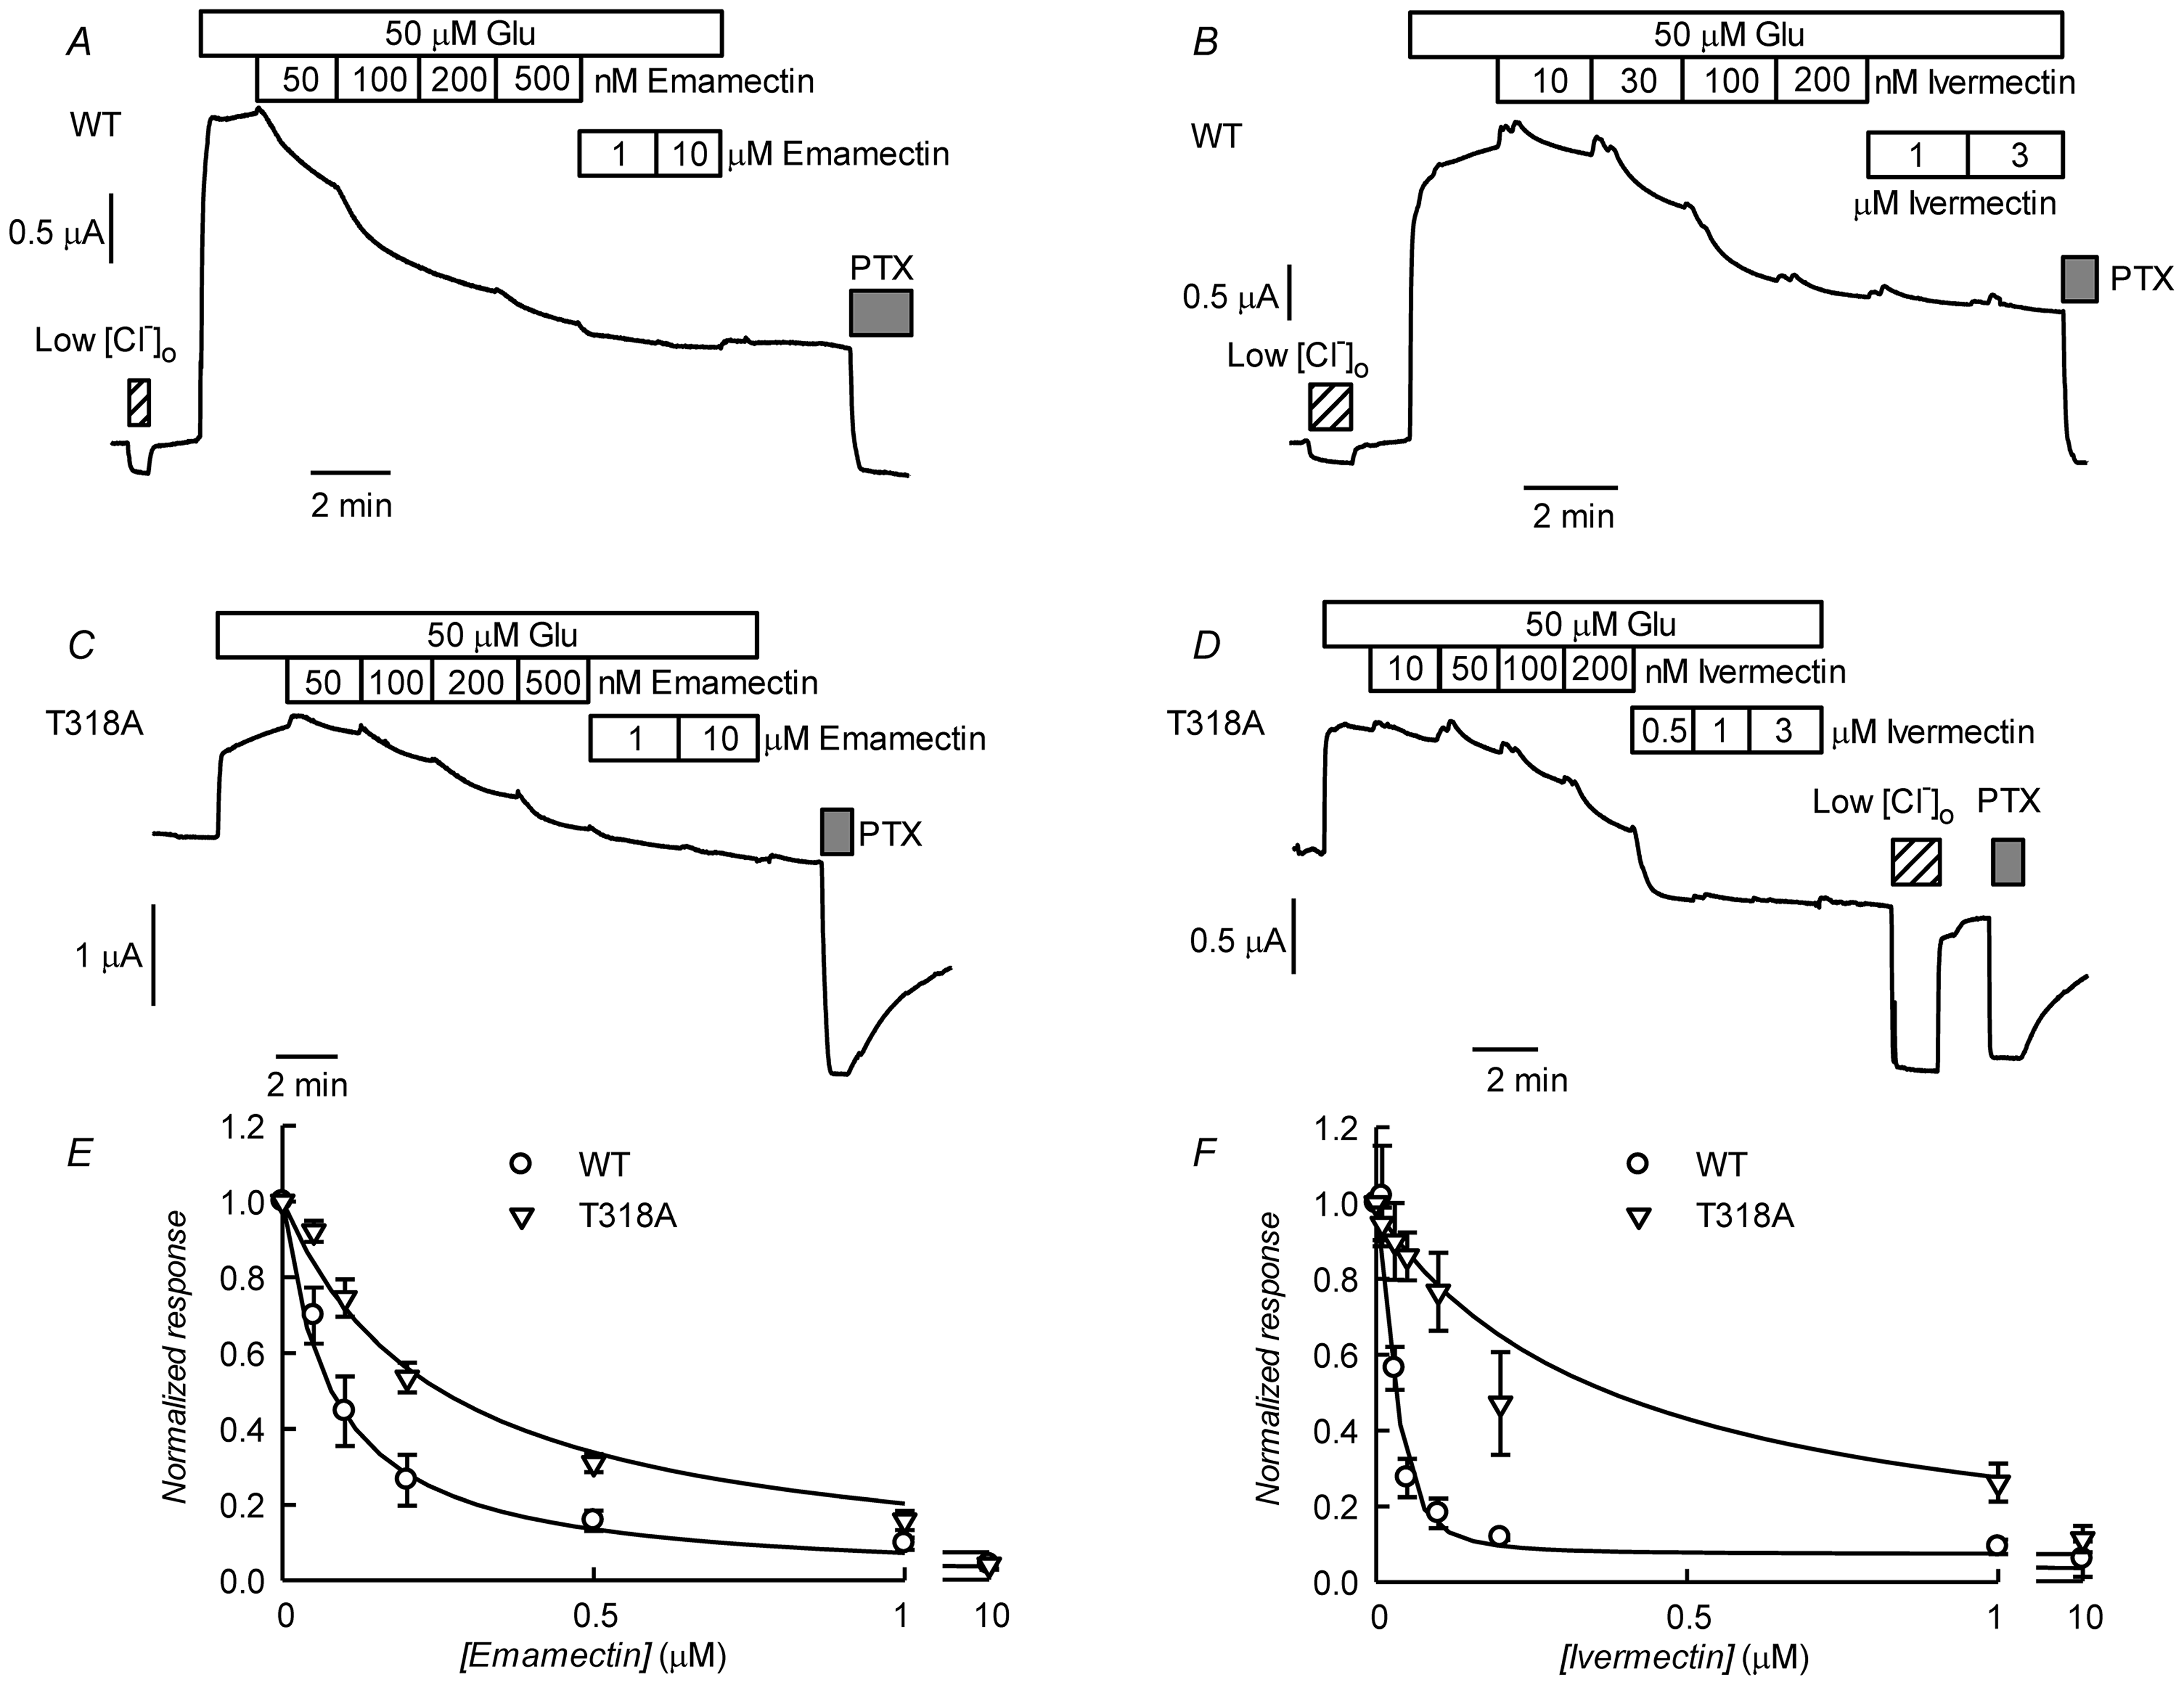 Effect of ivermectin or emamectin upon CrGluClα-T318A-dependent currents.